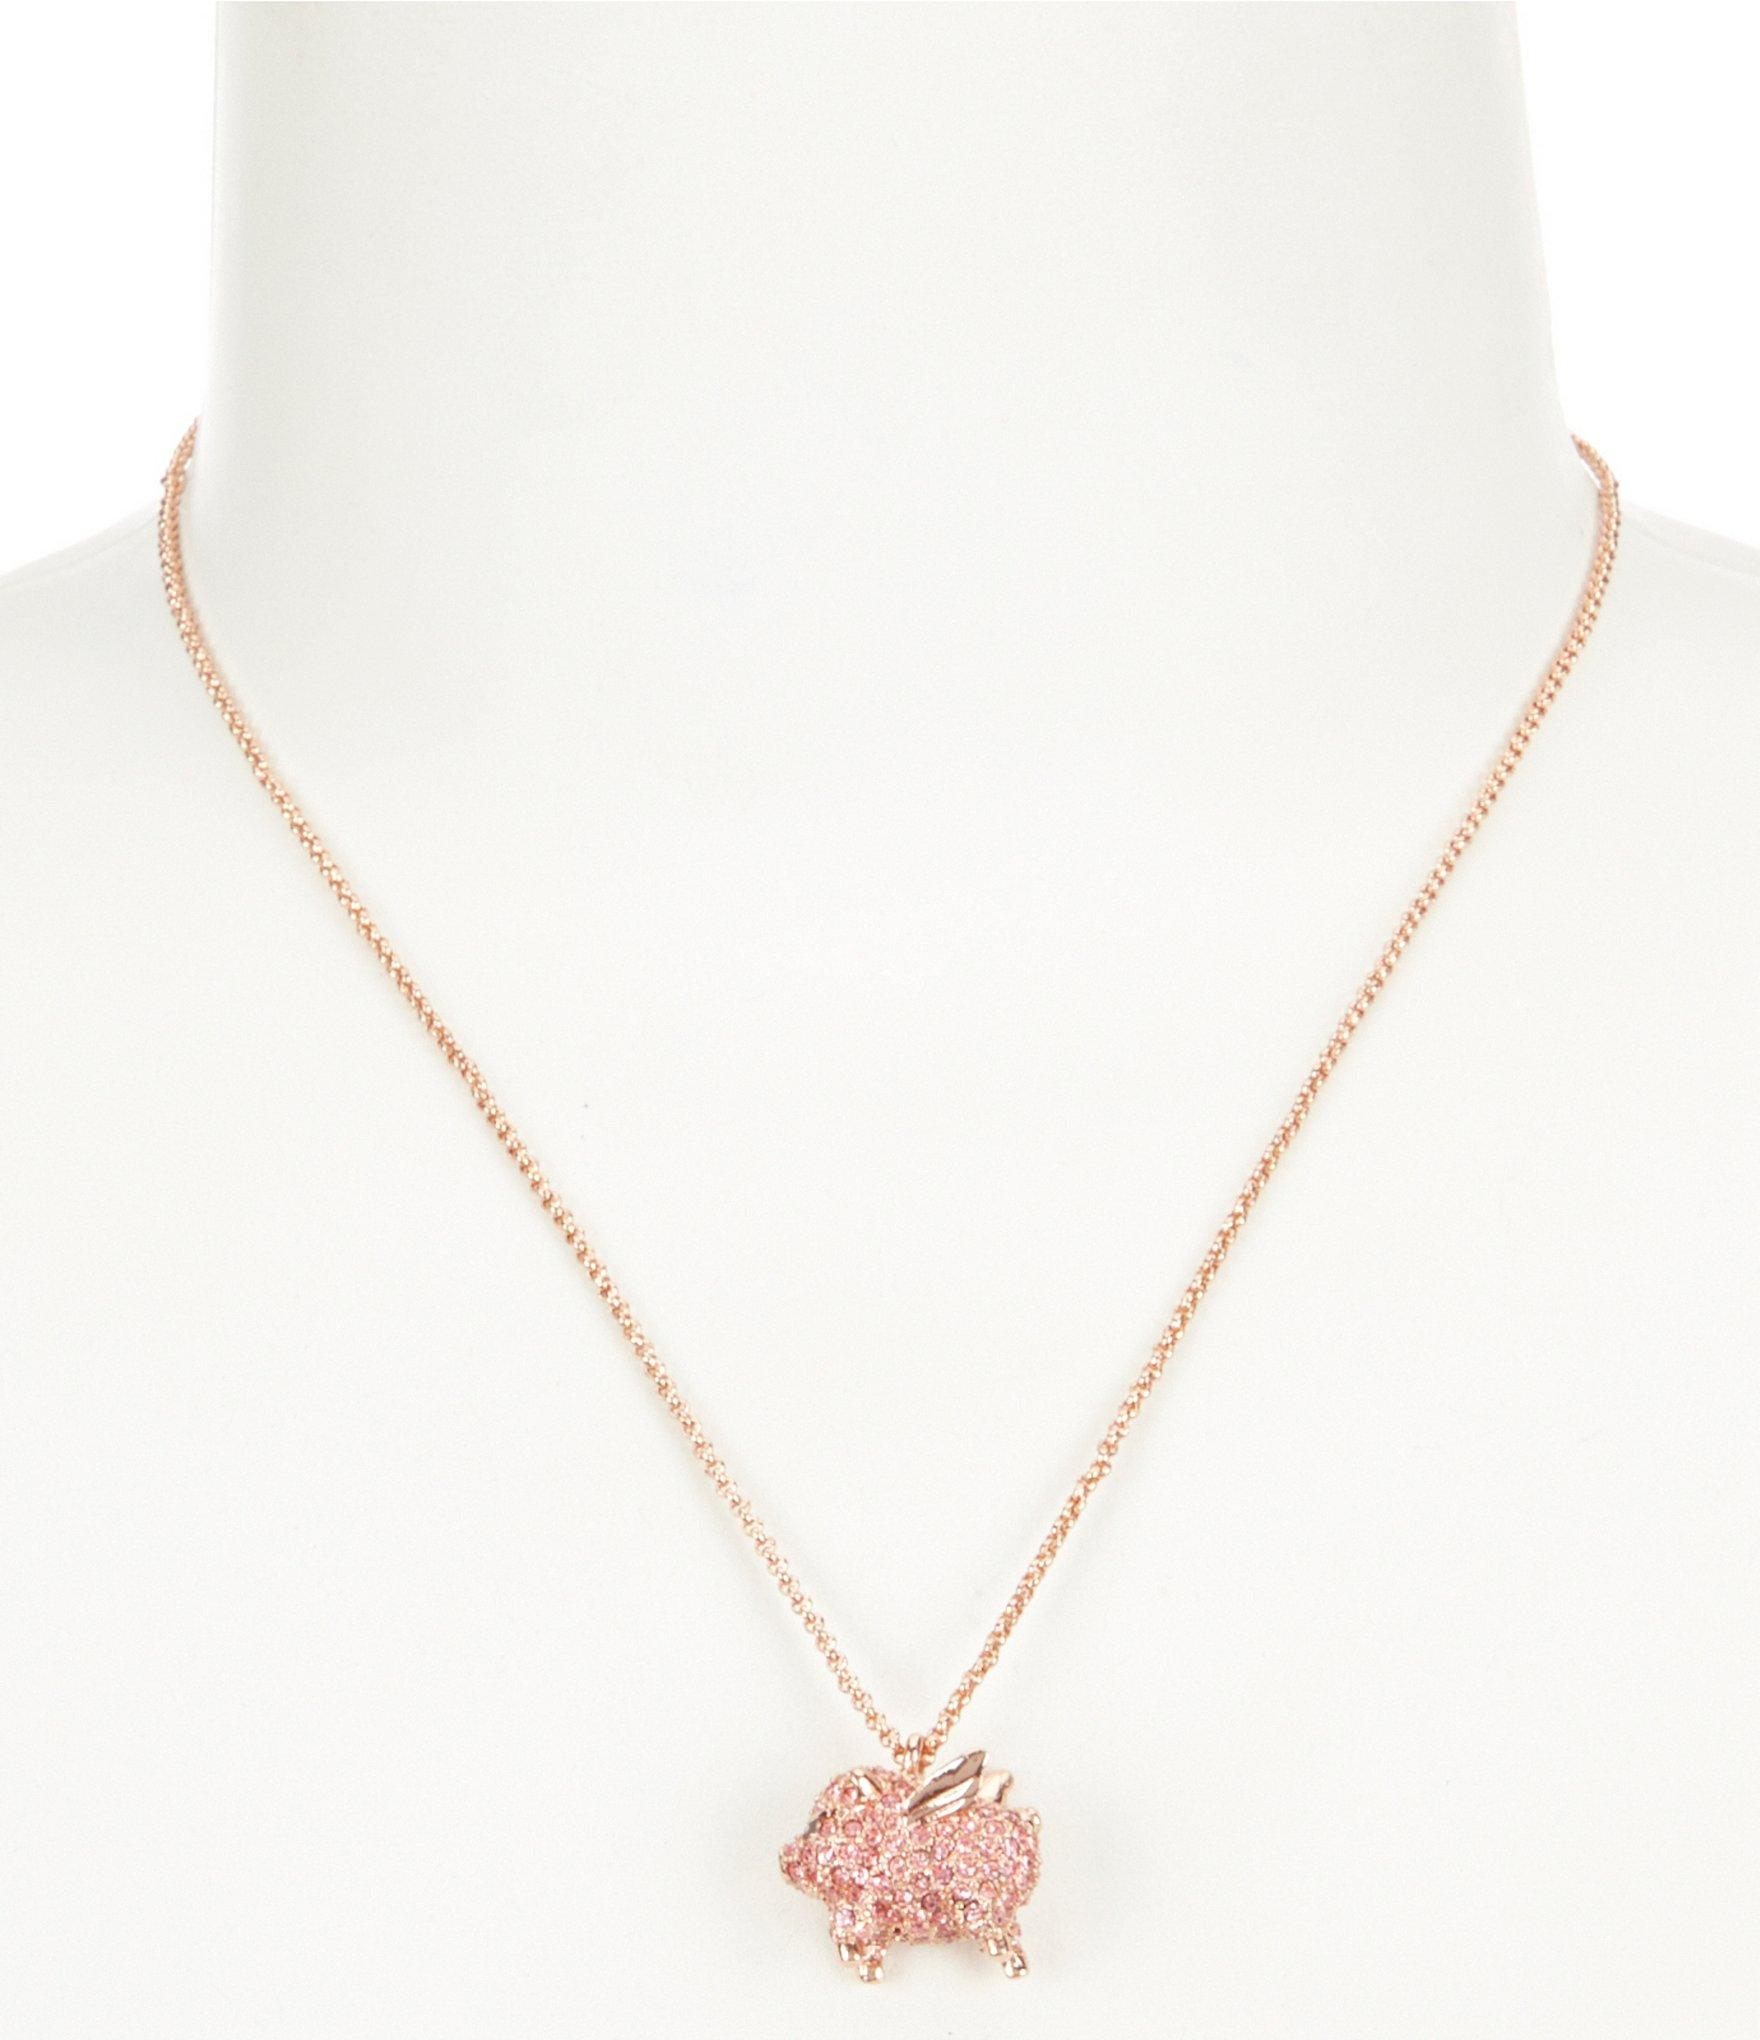 Lyst kate spade new york pav pig mini pendant necklace in metallic gallery mozeypictures Gallery